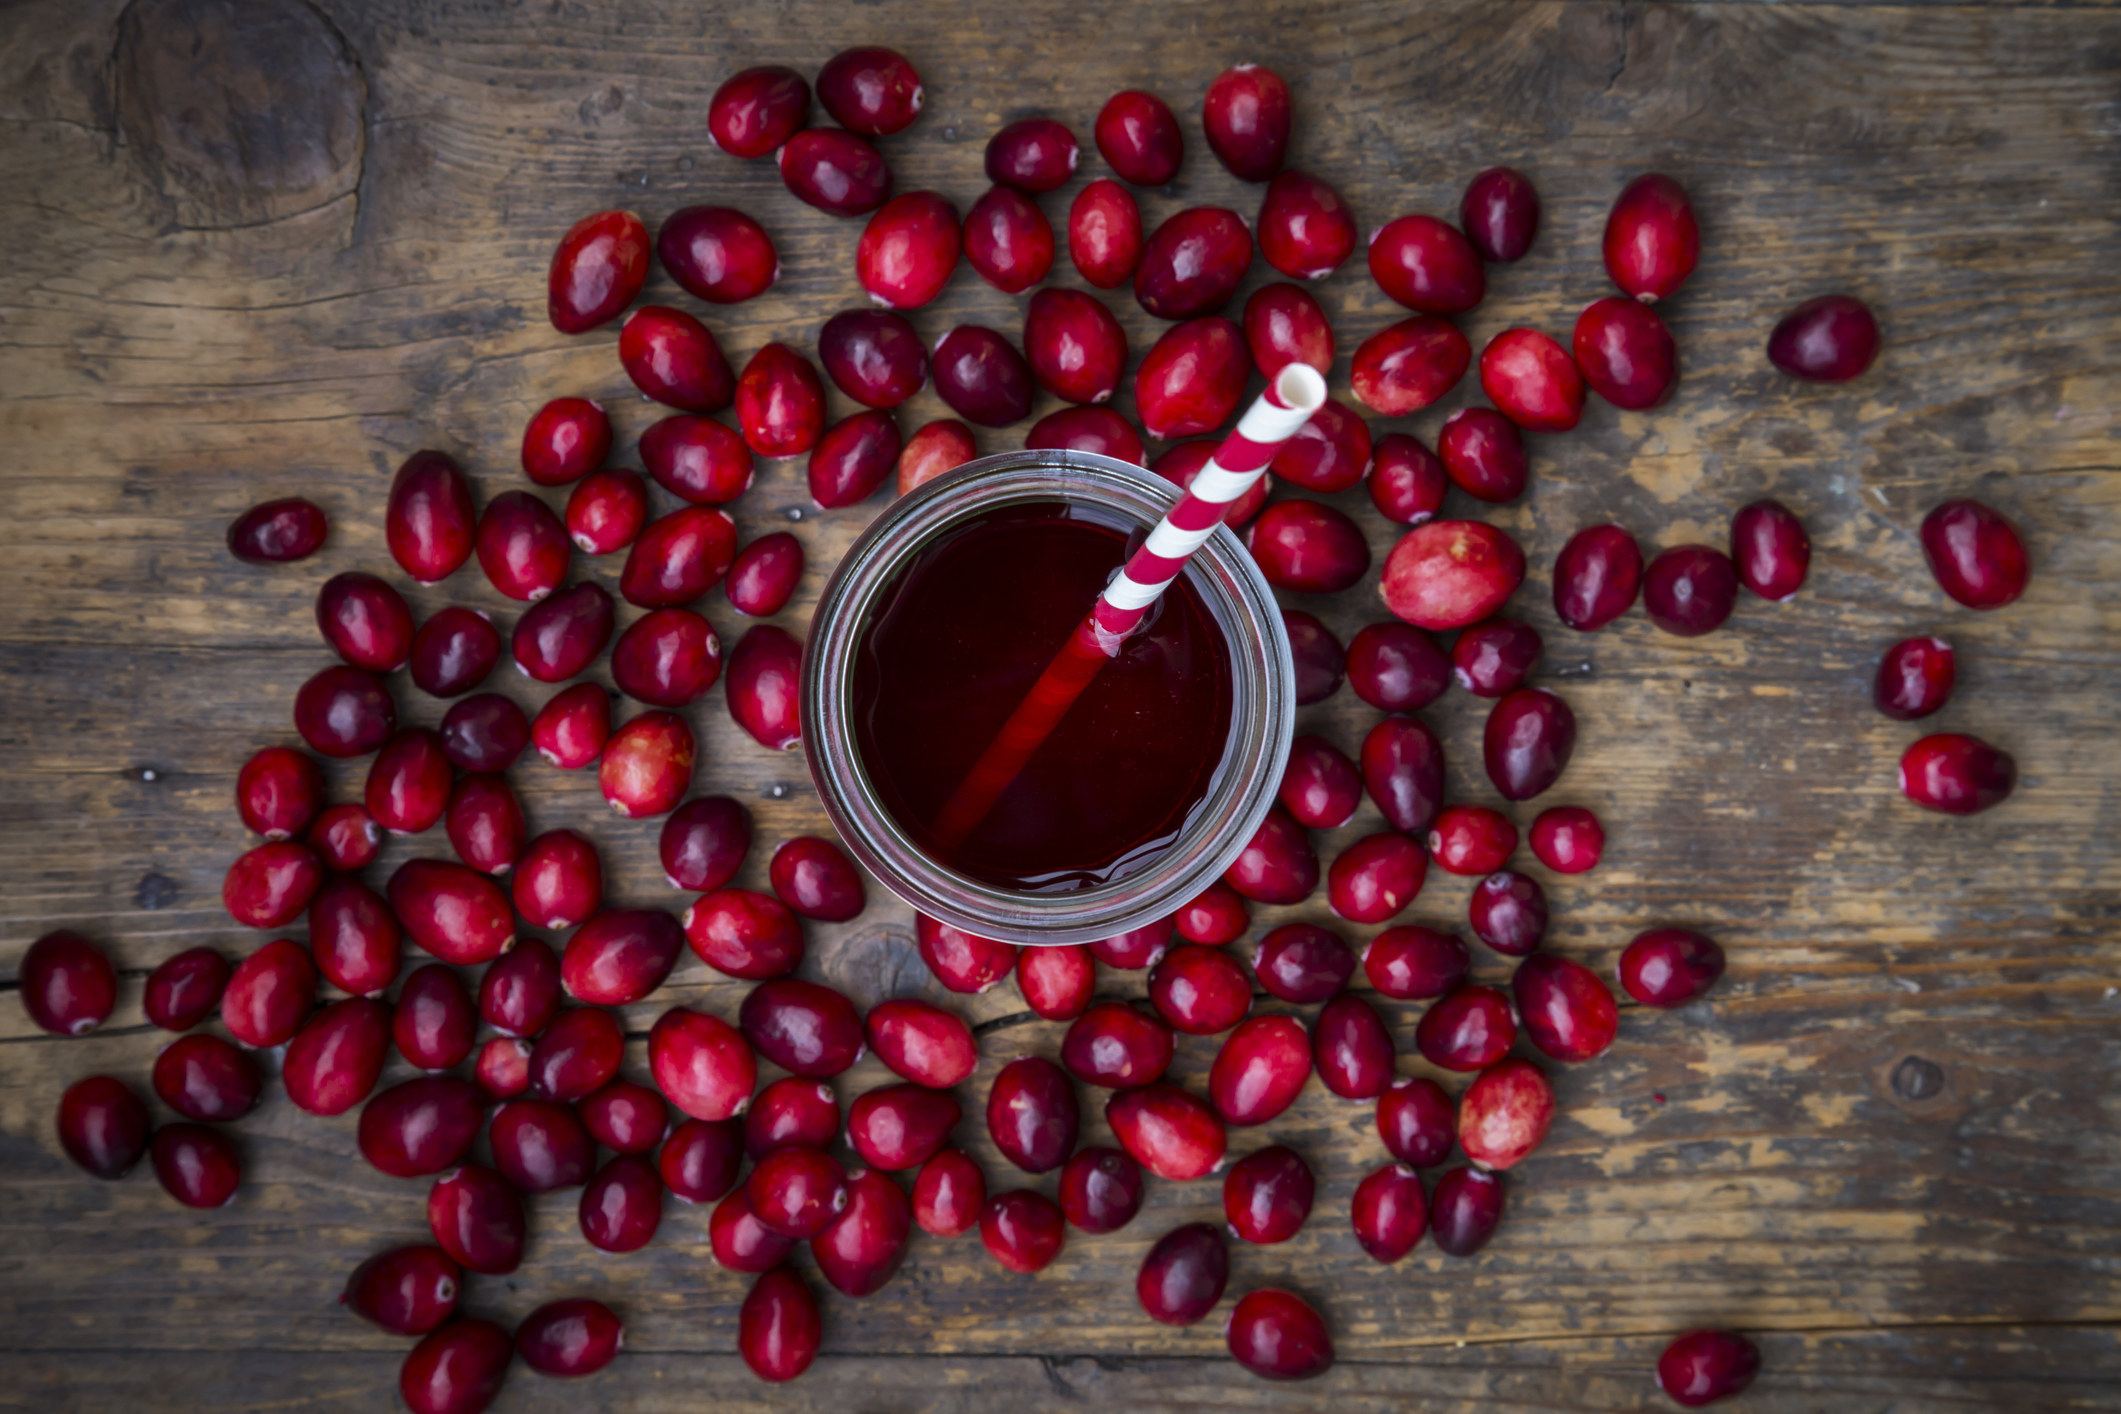 An image of a glass of cranberry juice.